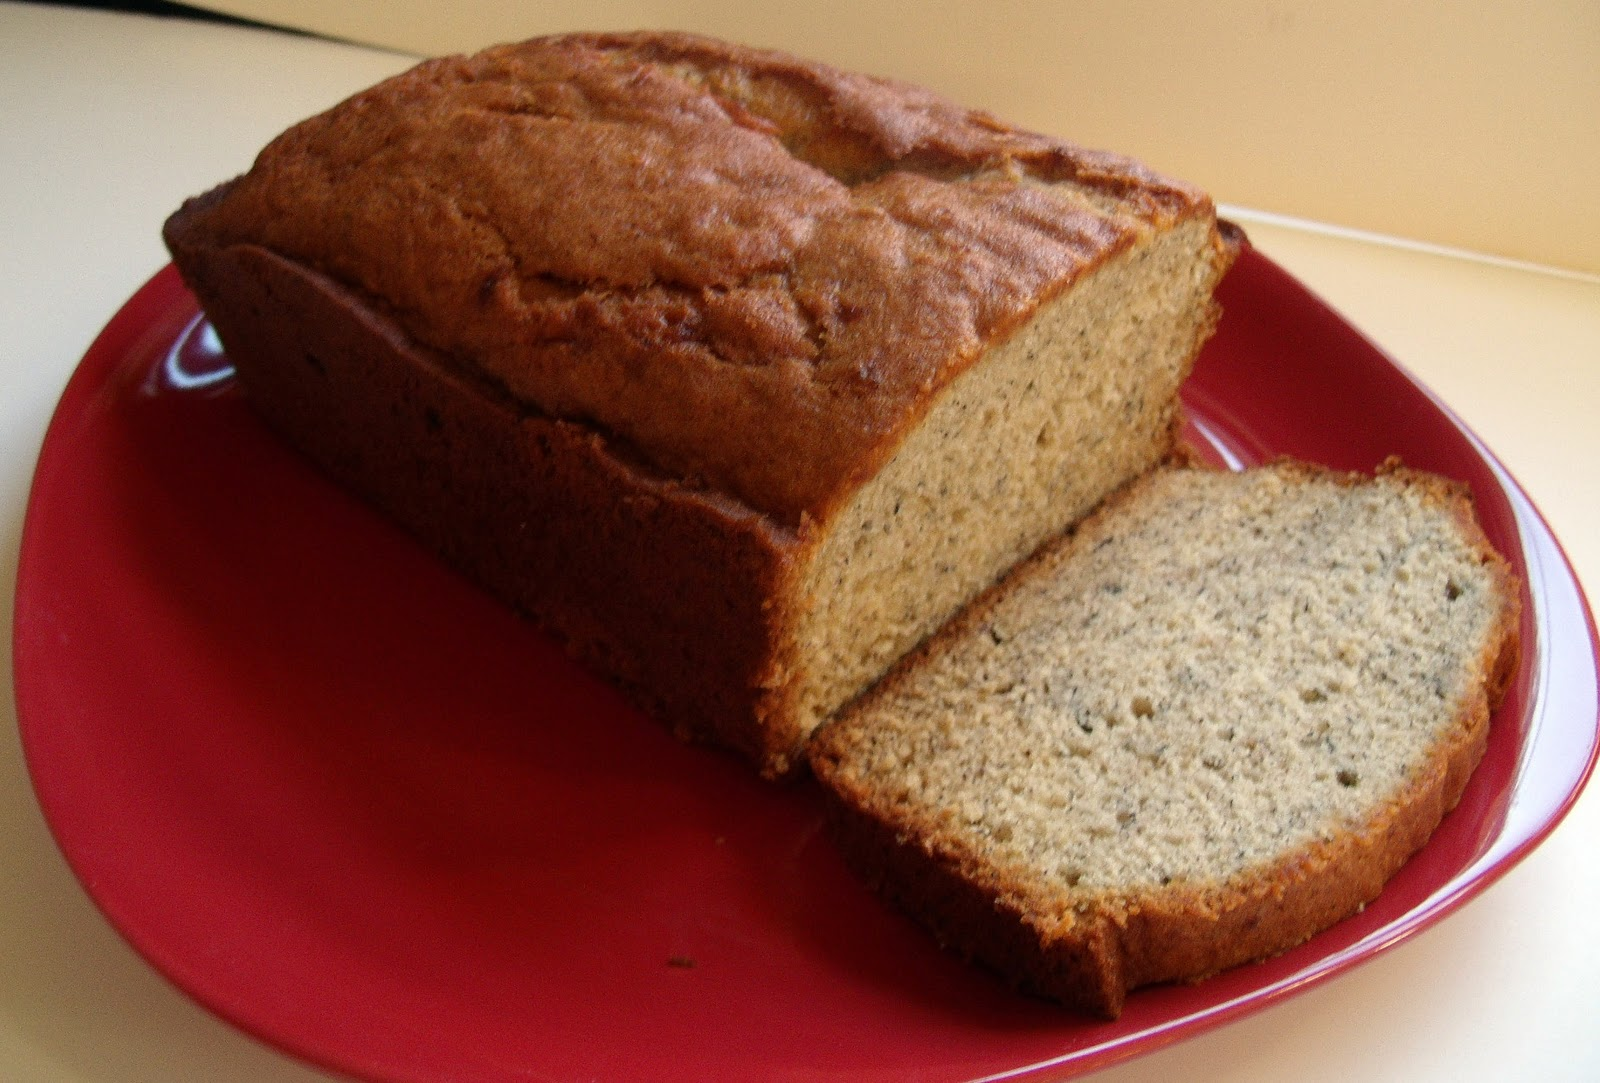 ... do you with 3 over ripe bananas why make banana bread of course this